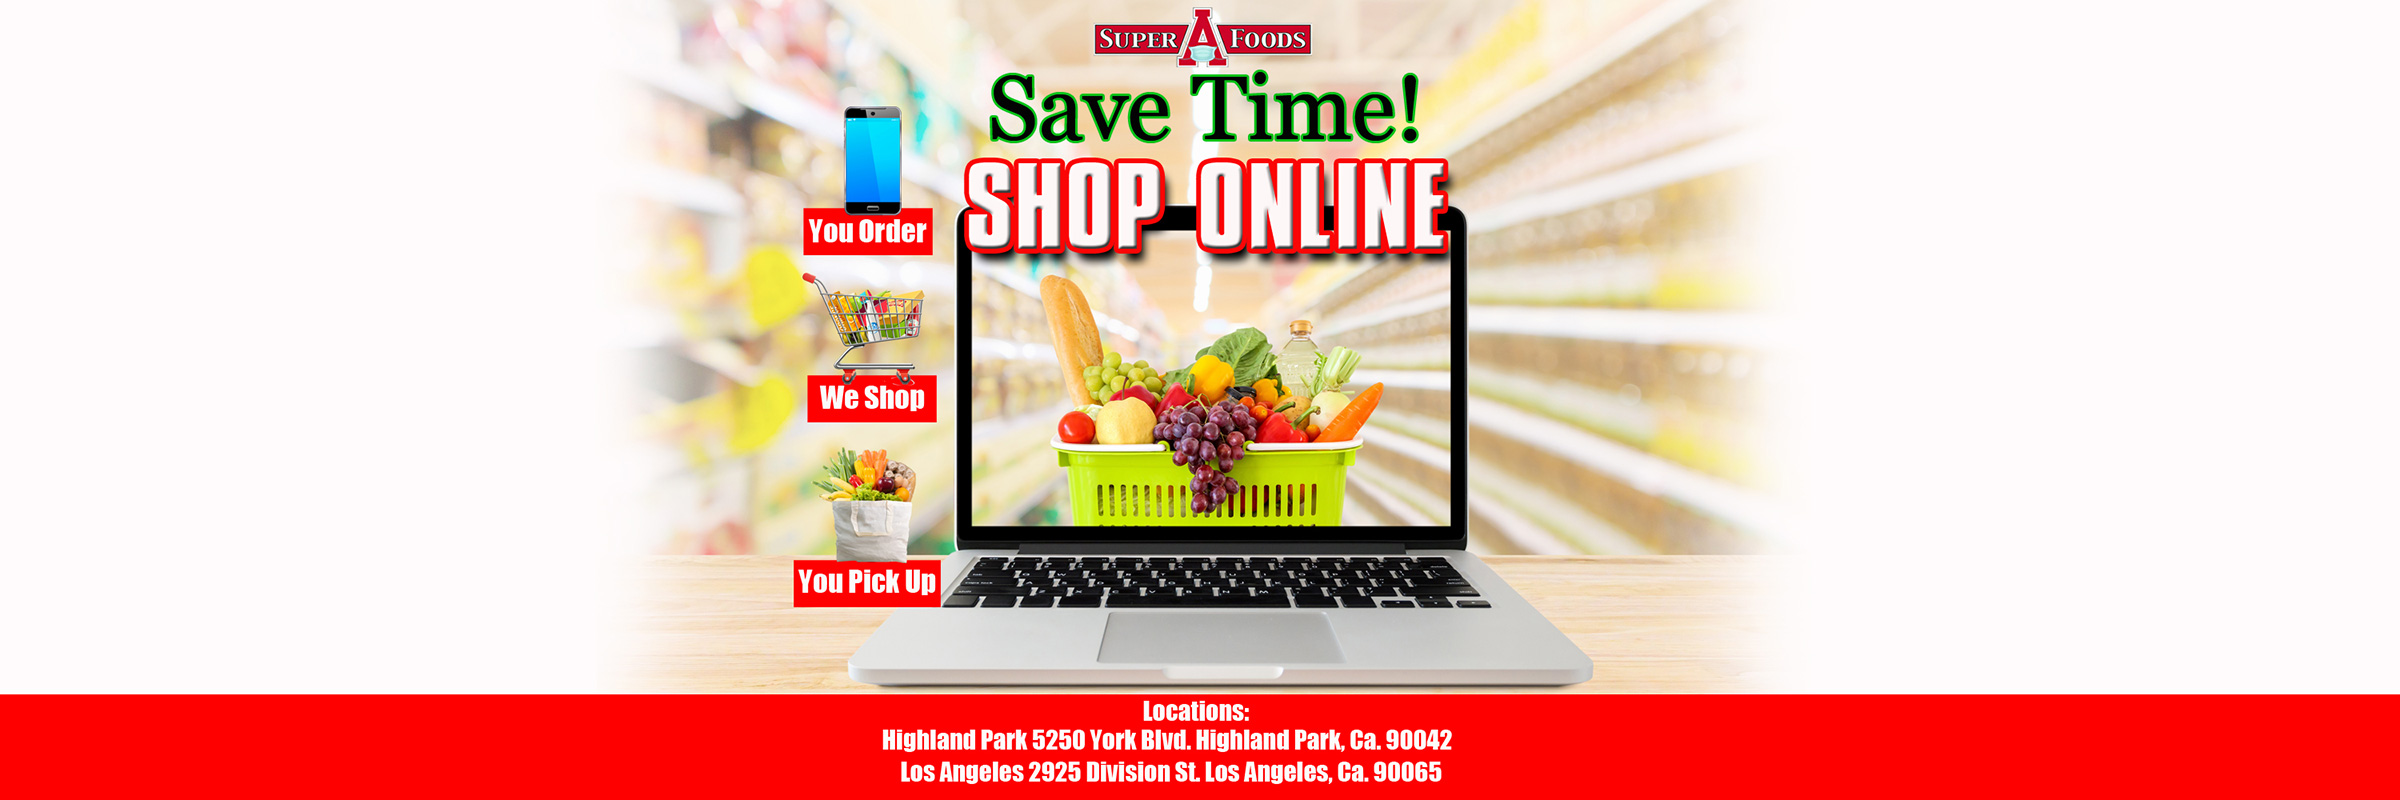 Shop online at our Highland Park and Los Angeles locations.